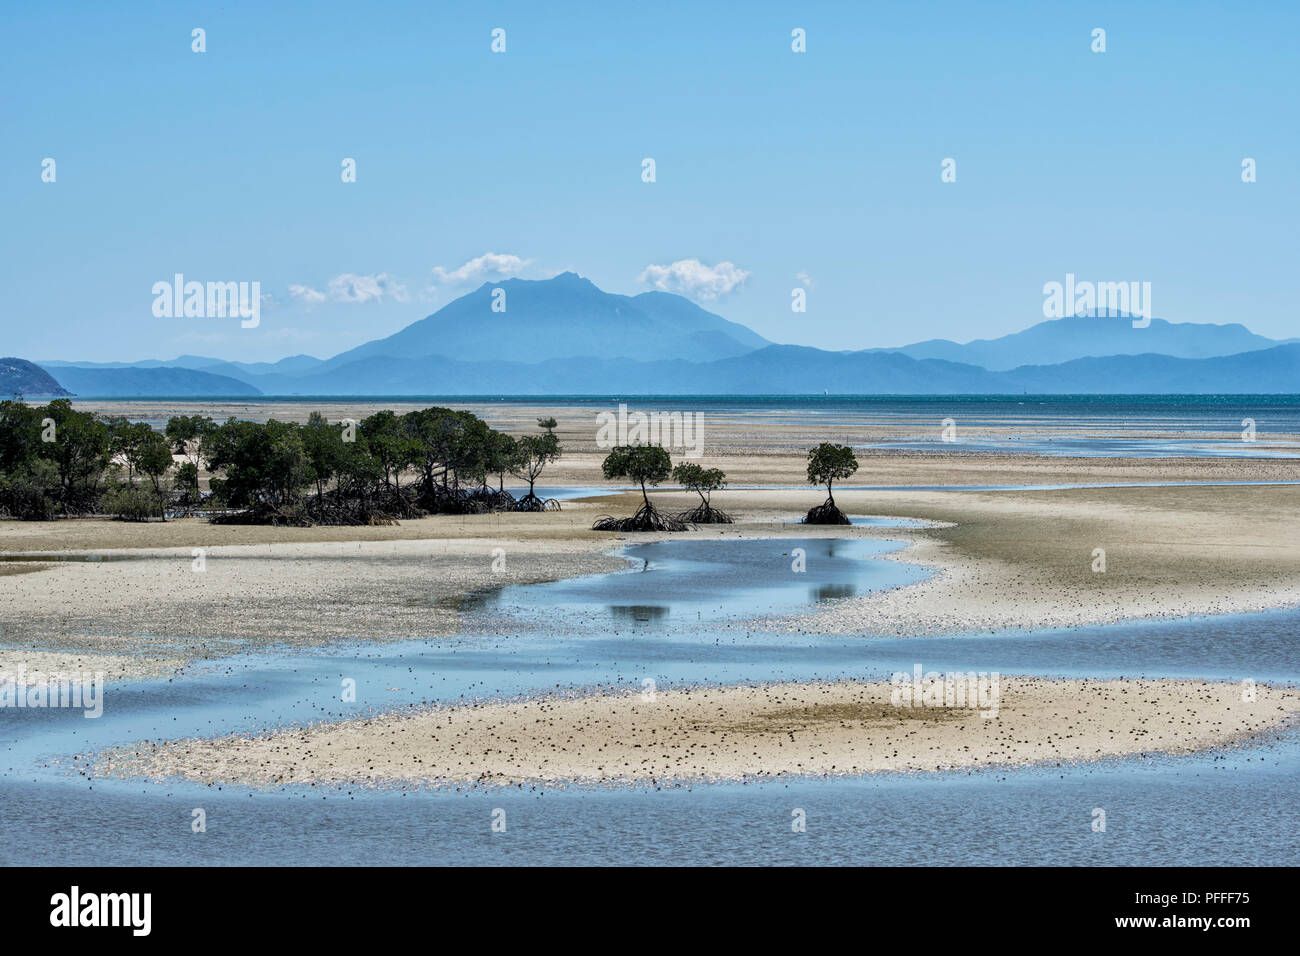 Scenic view of Yule Point near Port Douglas, Far North Queensland, FNQ, QLD, Australia - Stock Image